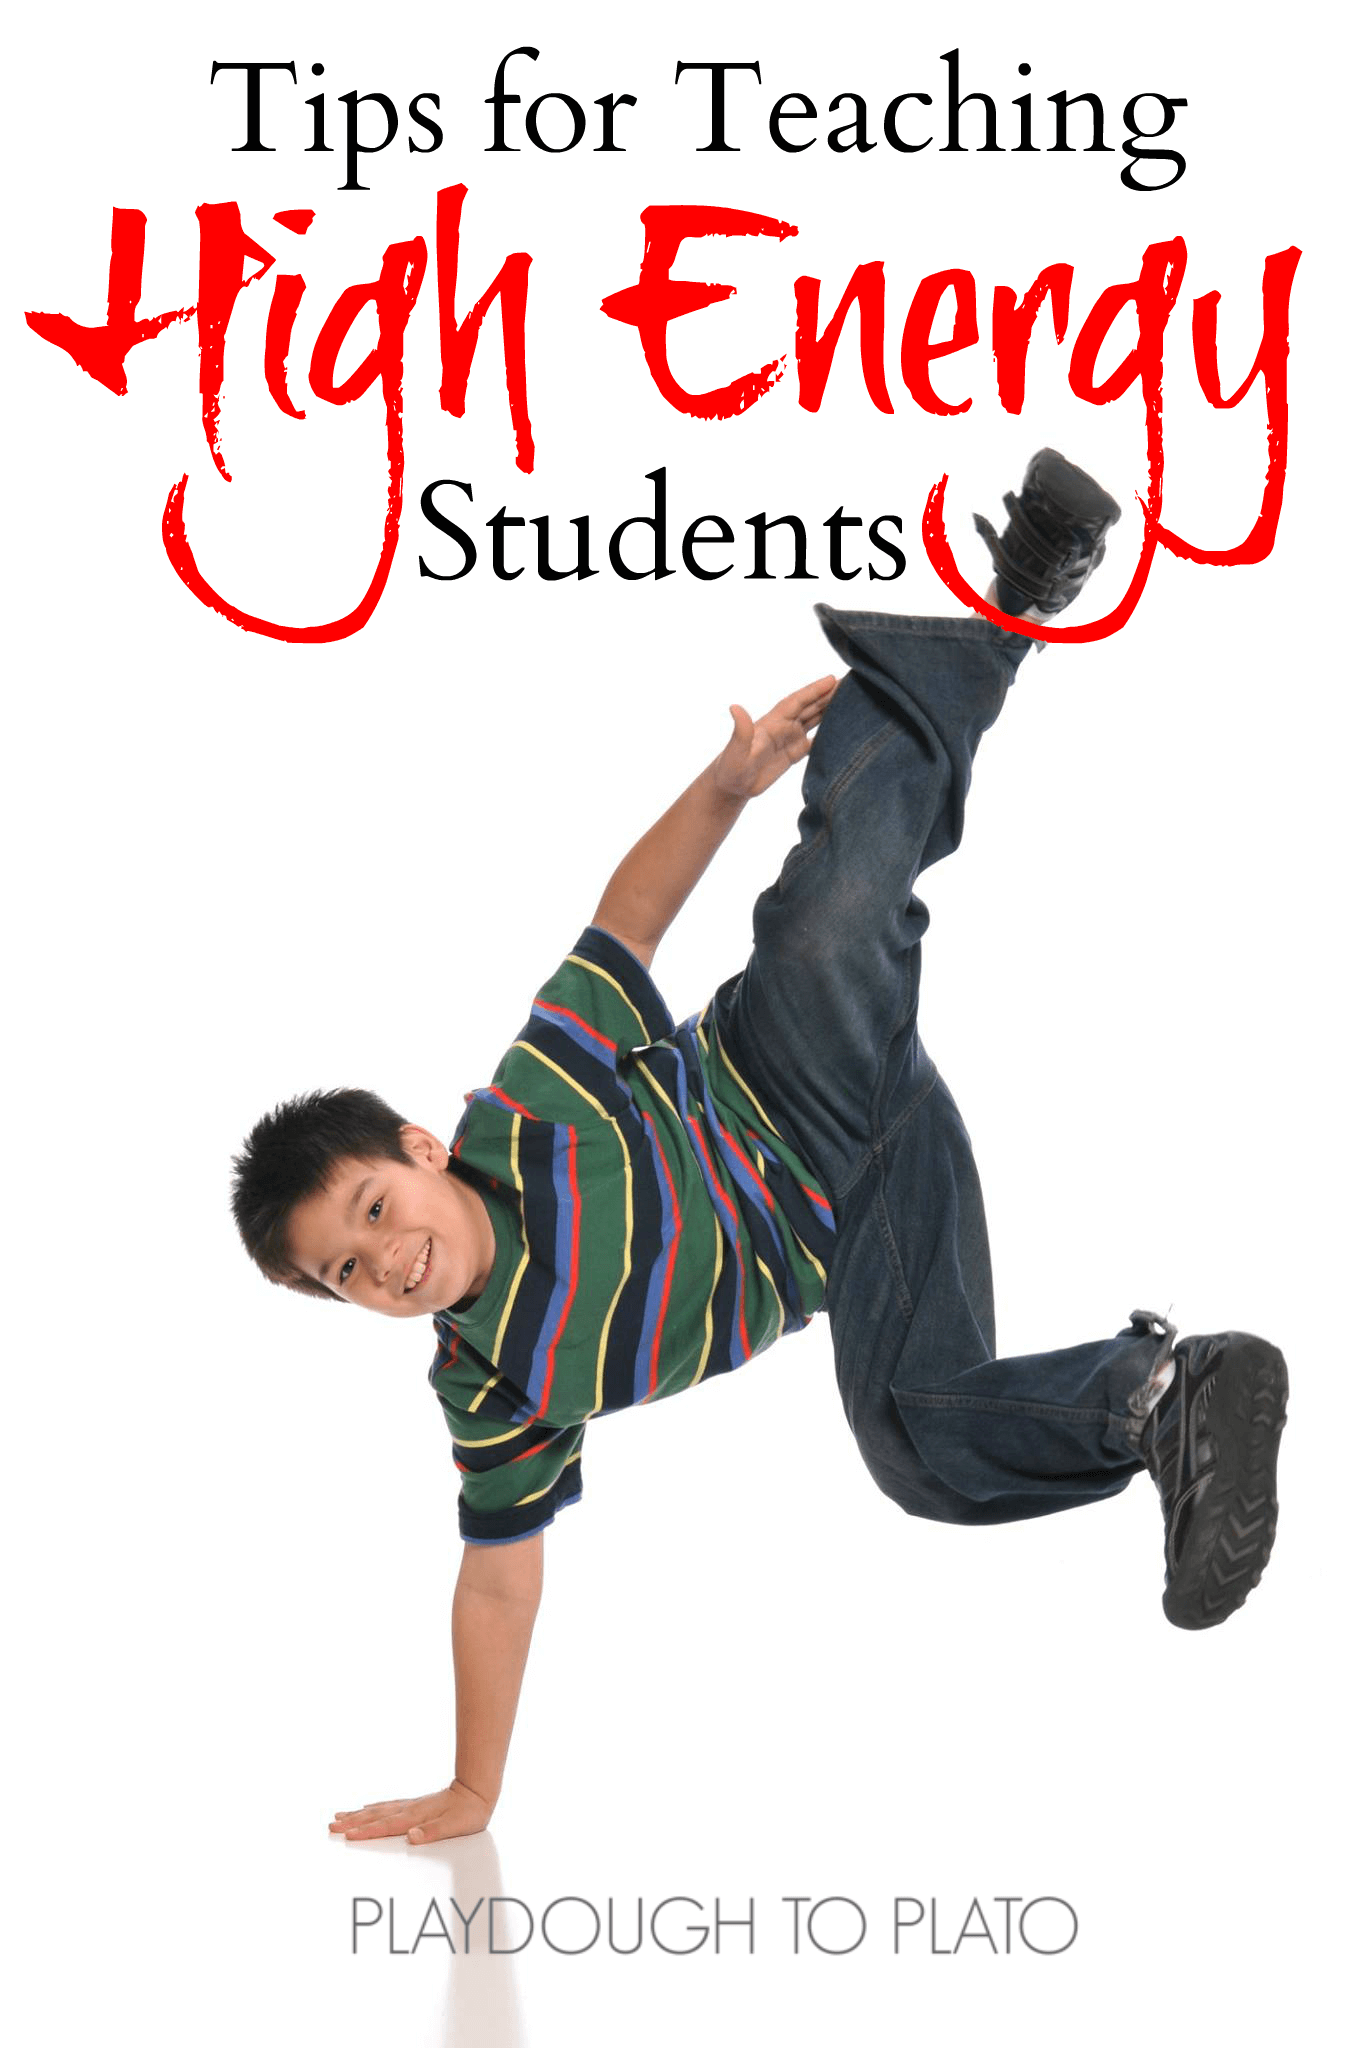 5 Tips For Teaching High Energy Students